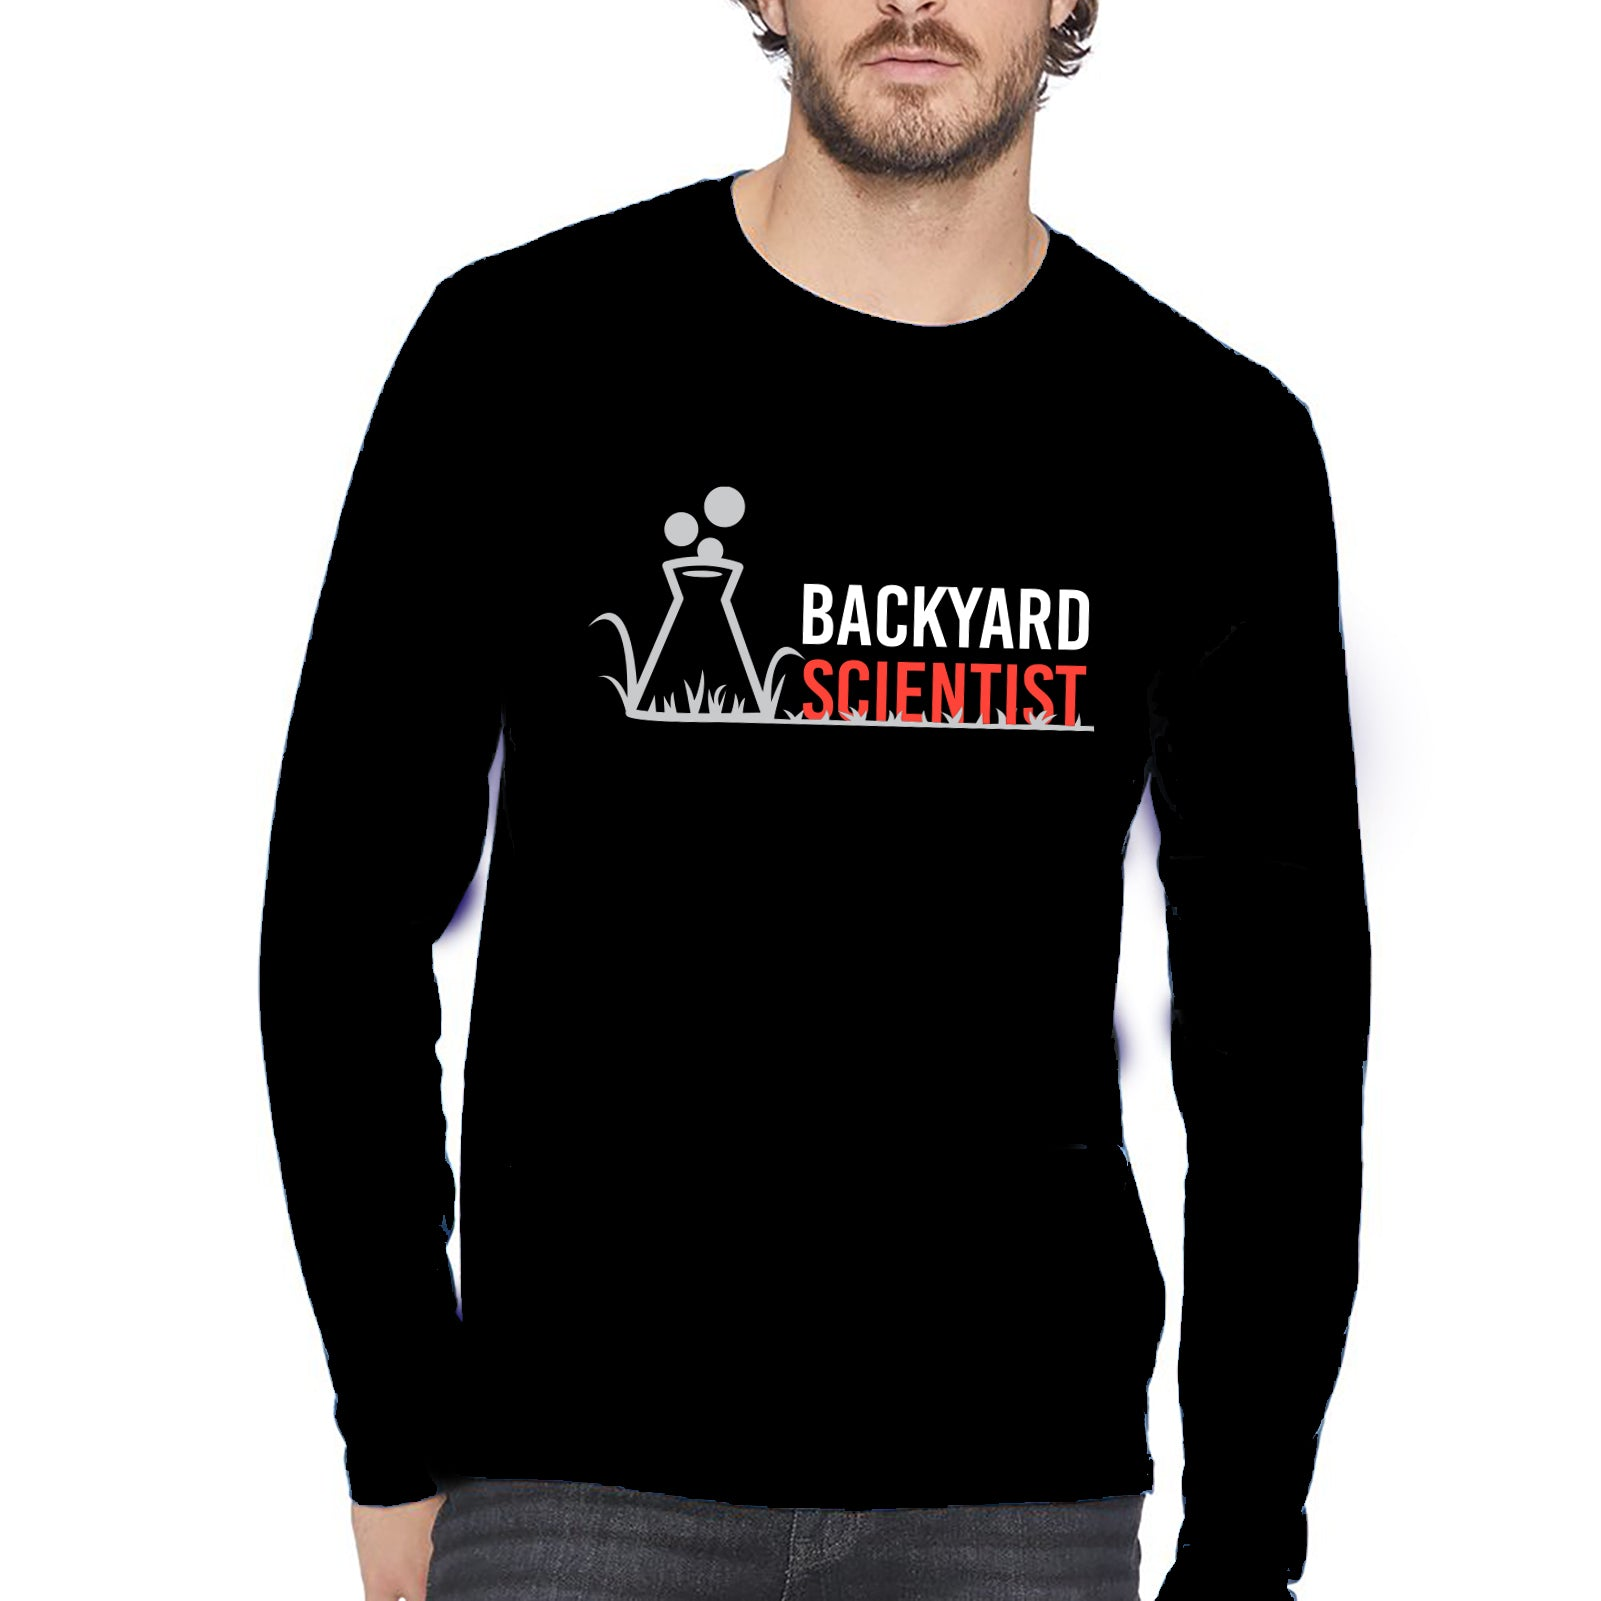 Backyard Scientist Longsleeve - Black